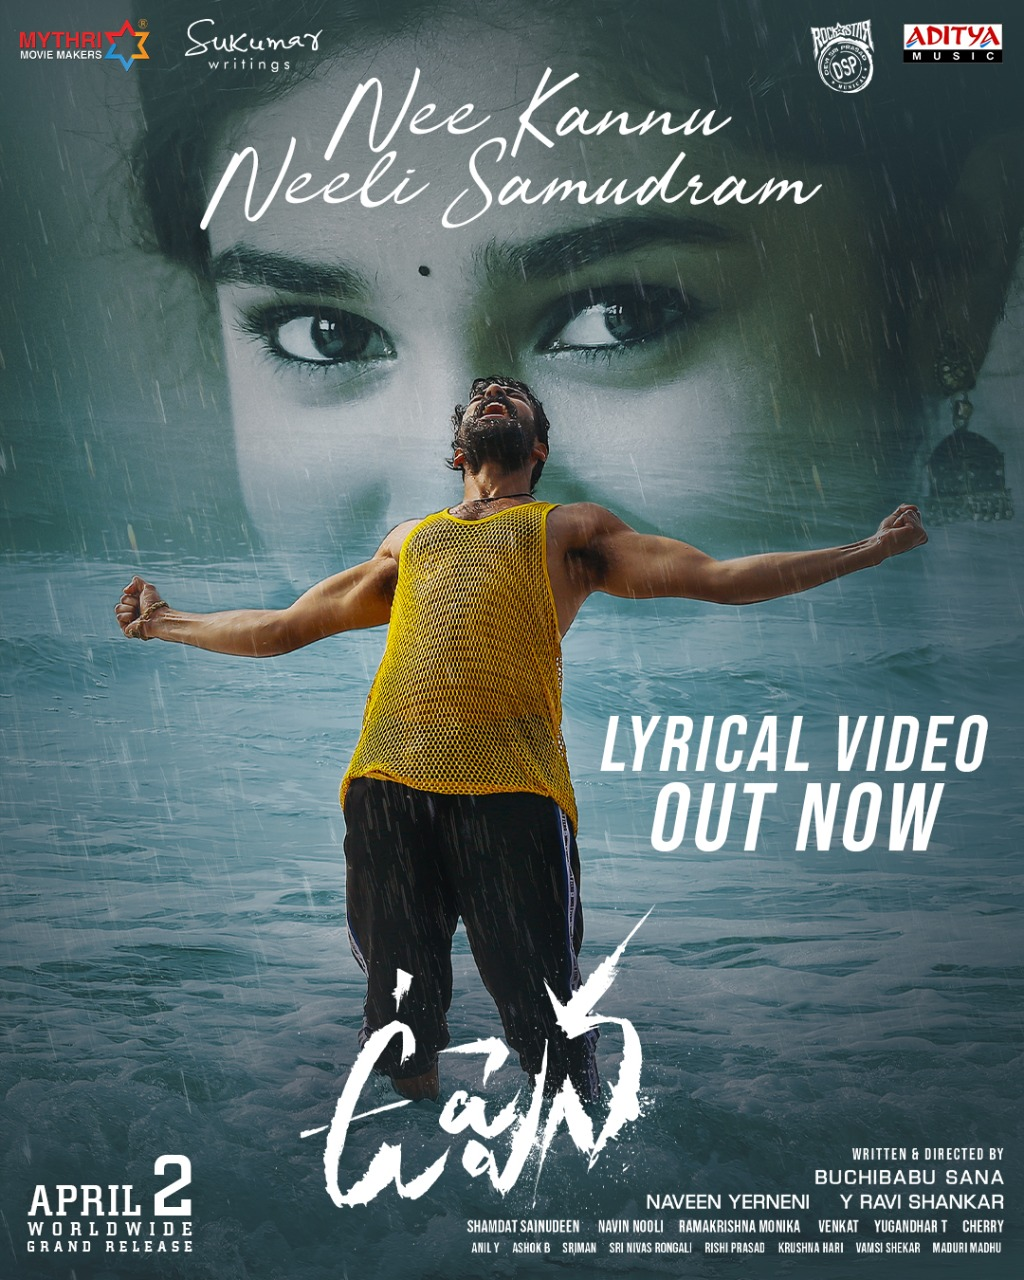 Uppena - Nee Kannu Neeli Samudram Lyrical song